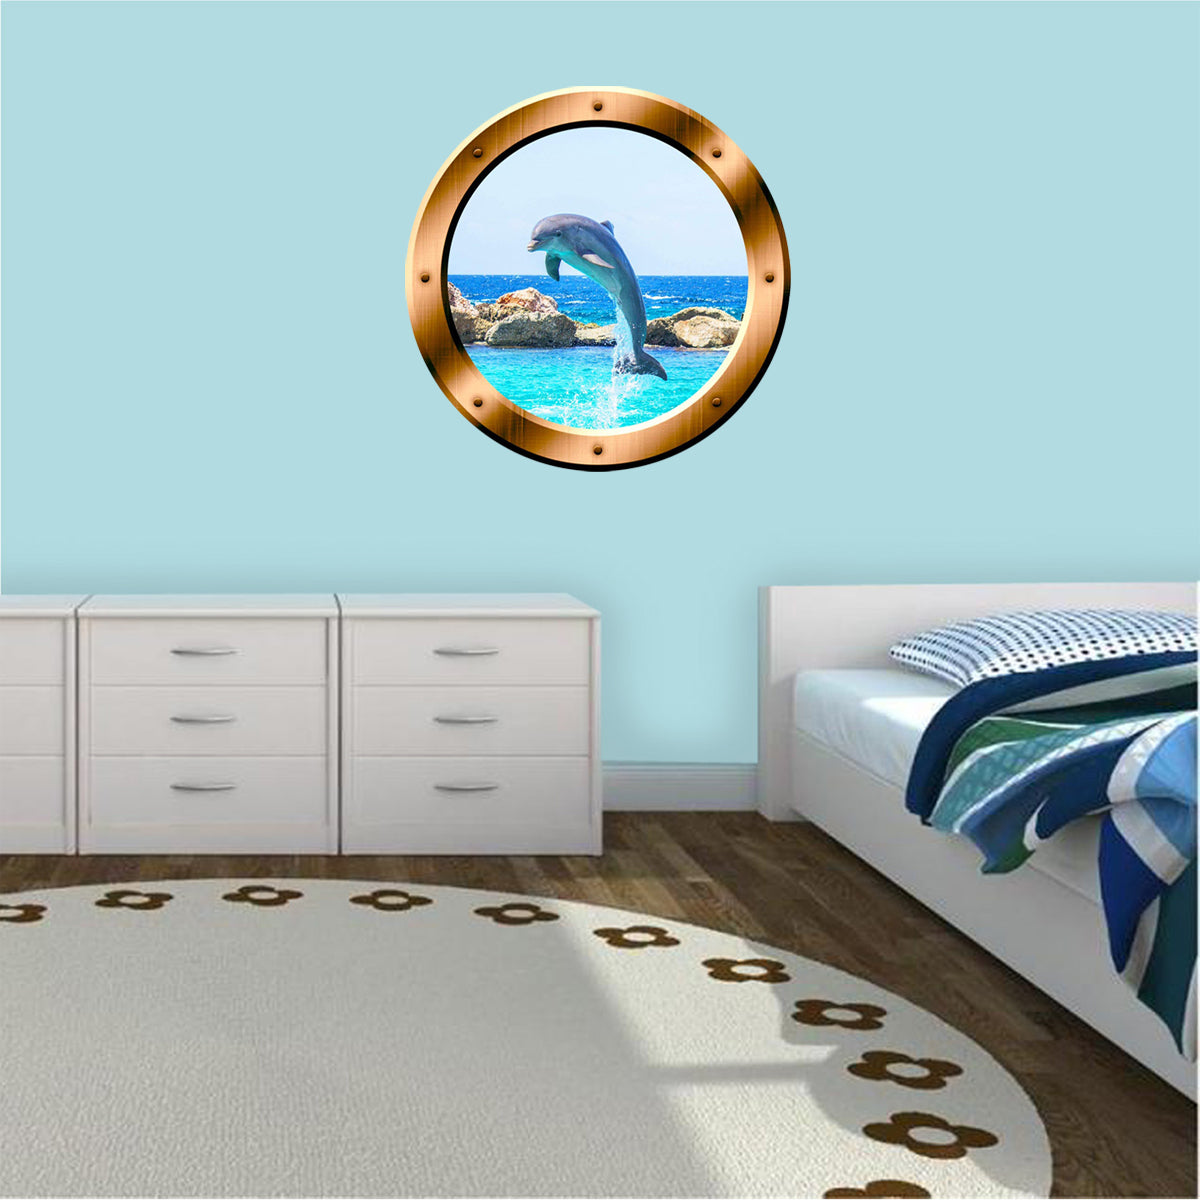 VWAQ Dolphin in Ocean Bronze Porthole Peel and Stick Vinyl Wall Decal - BP30 - VWAQ Vinyl Wall Art Quotes and Prints